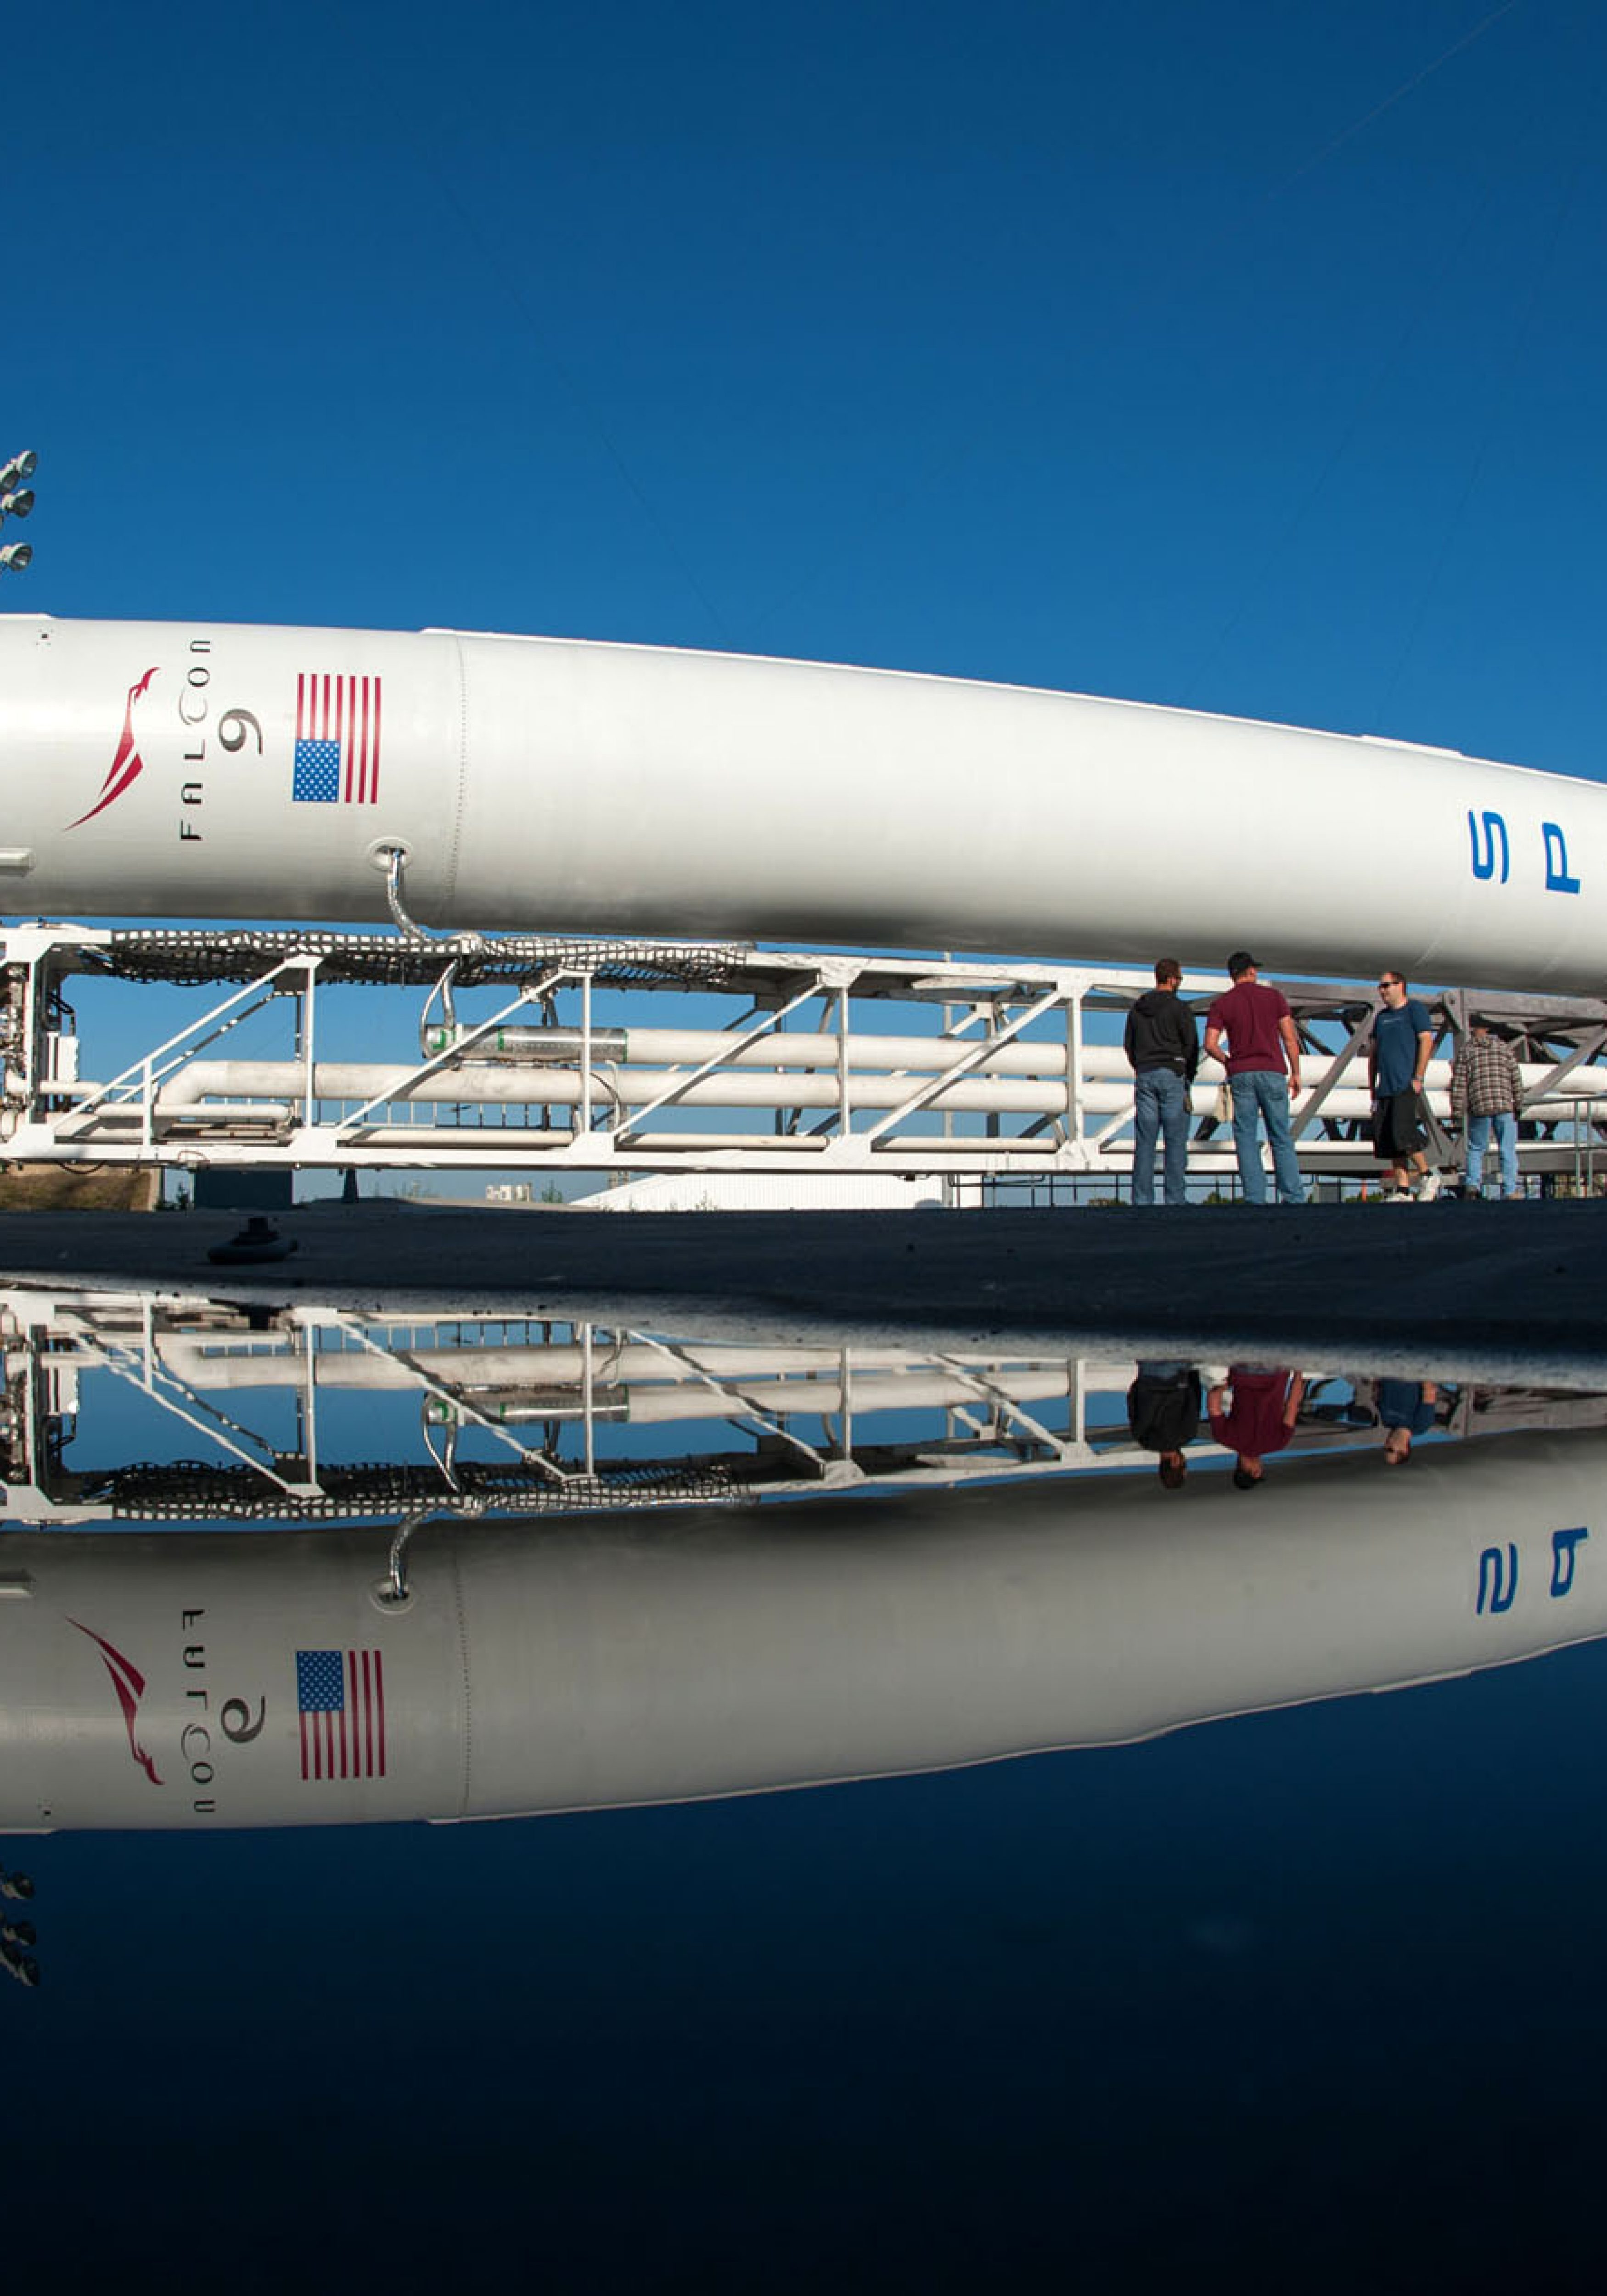 spacex - large